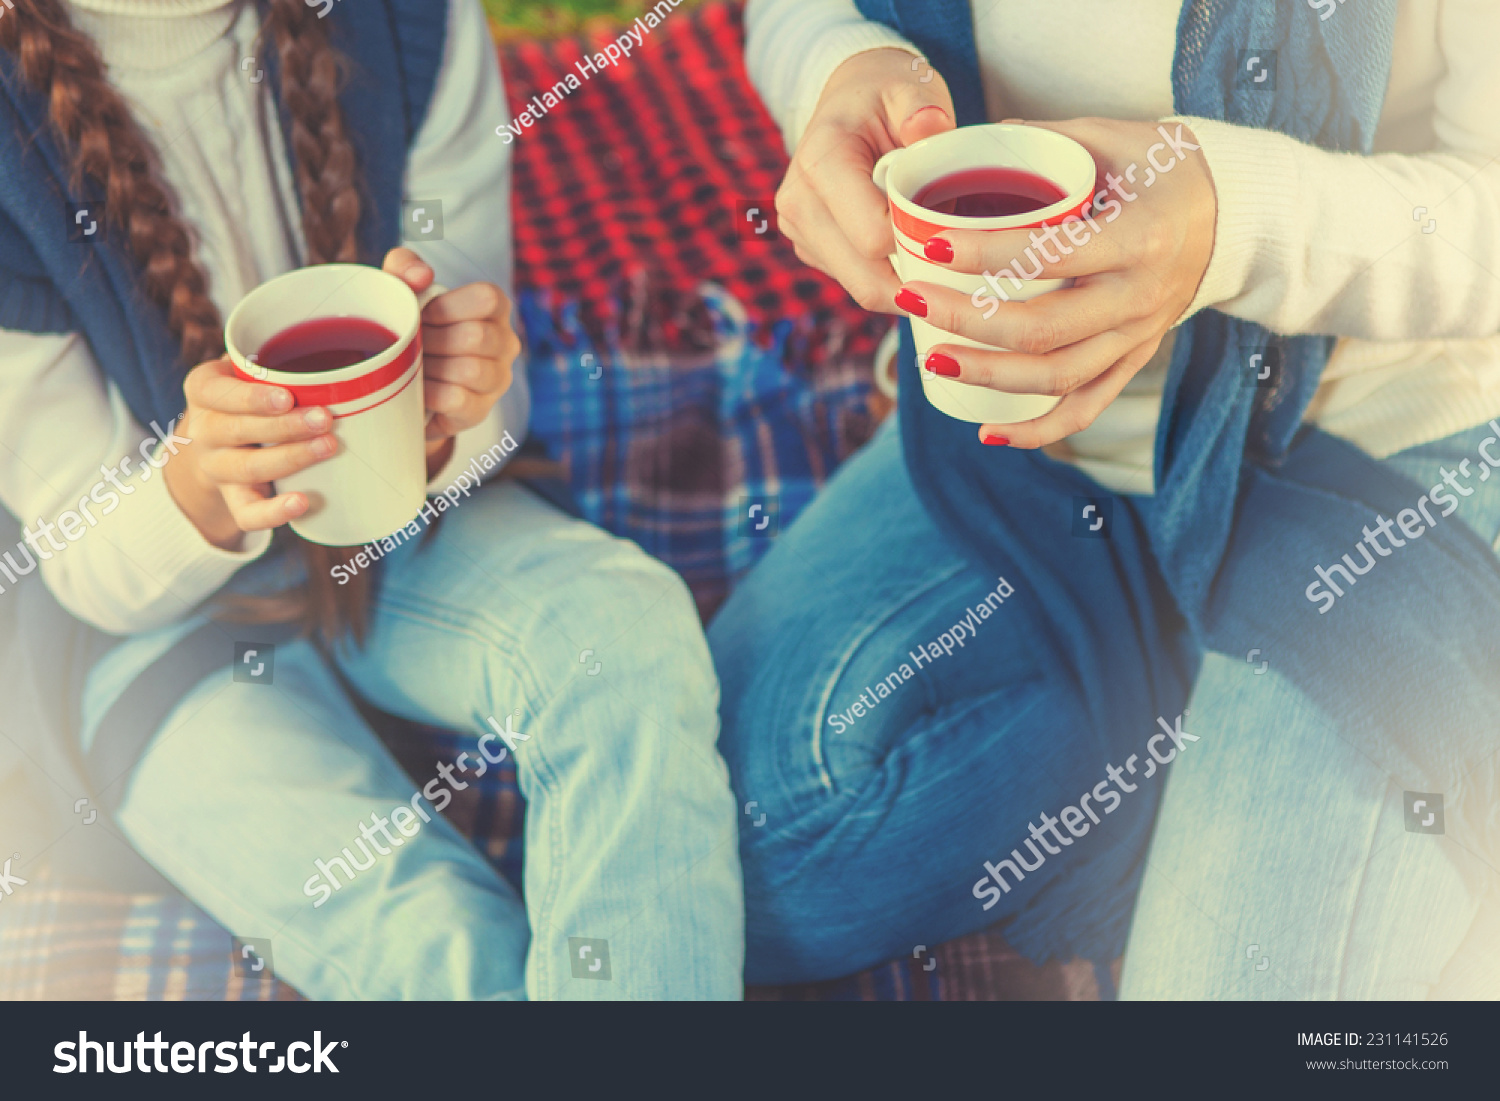 drinking tea or a cup of tea. hands woman and